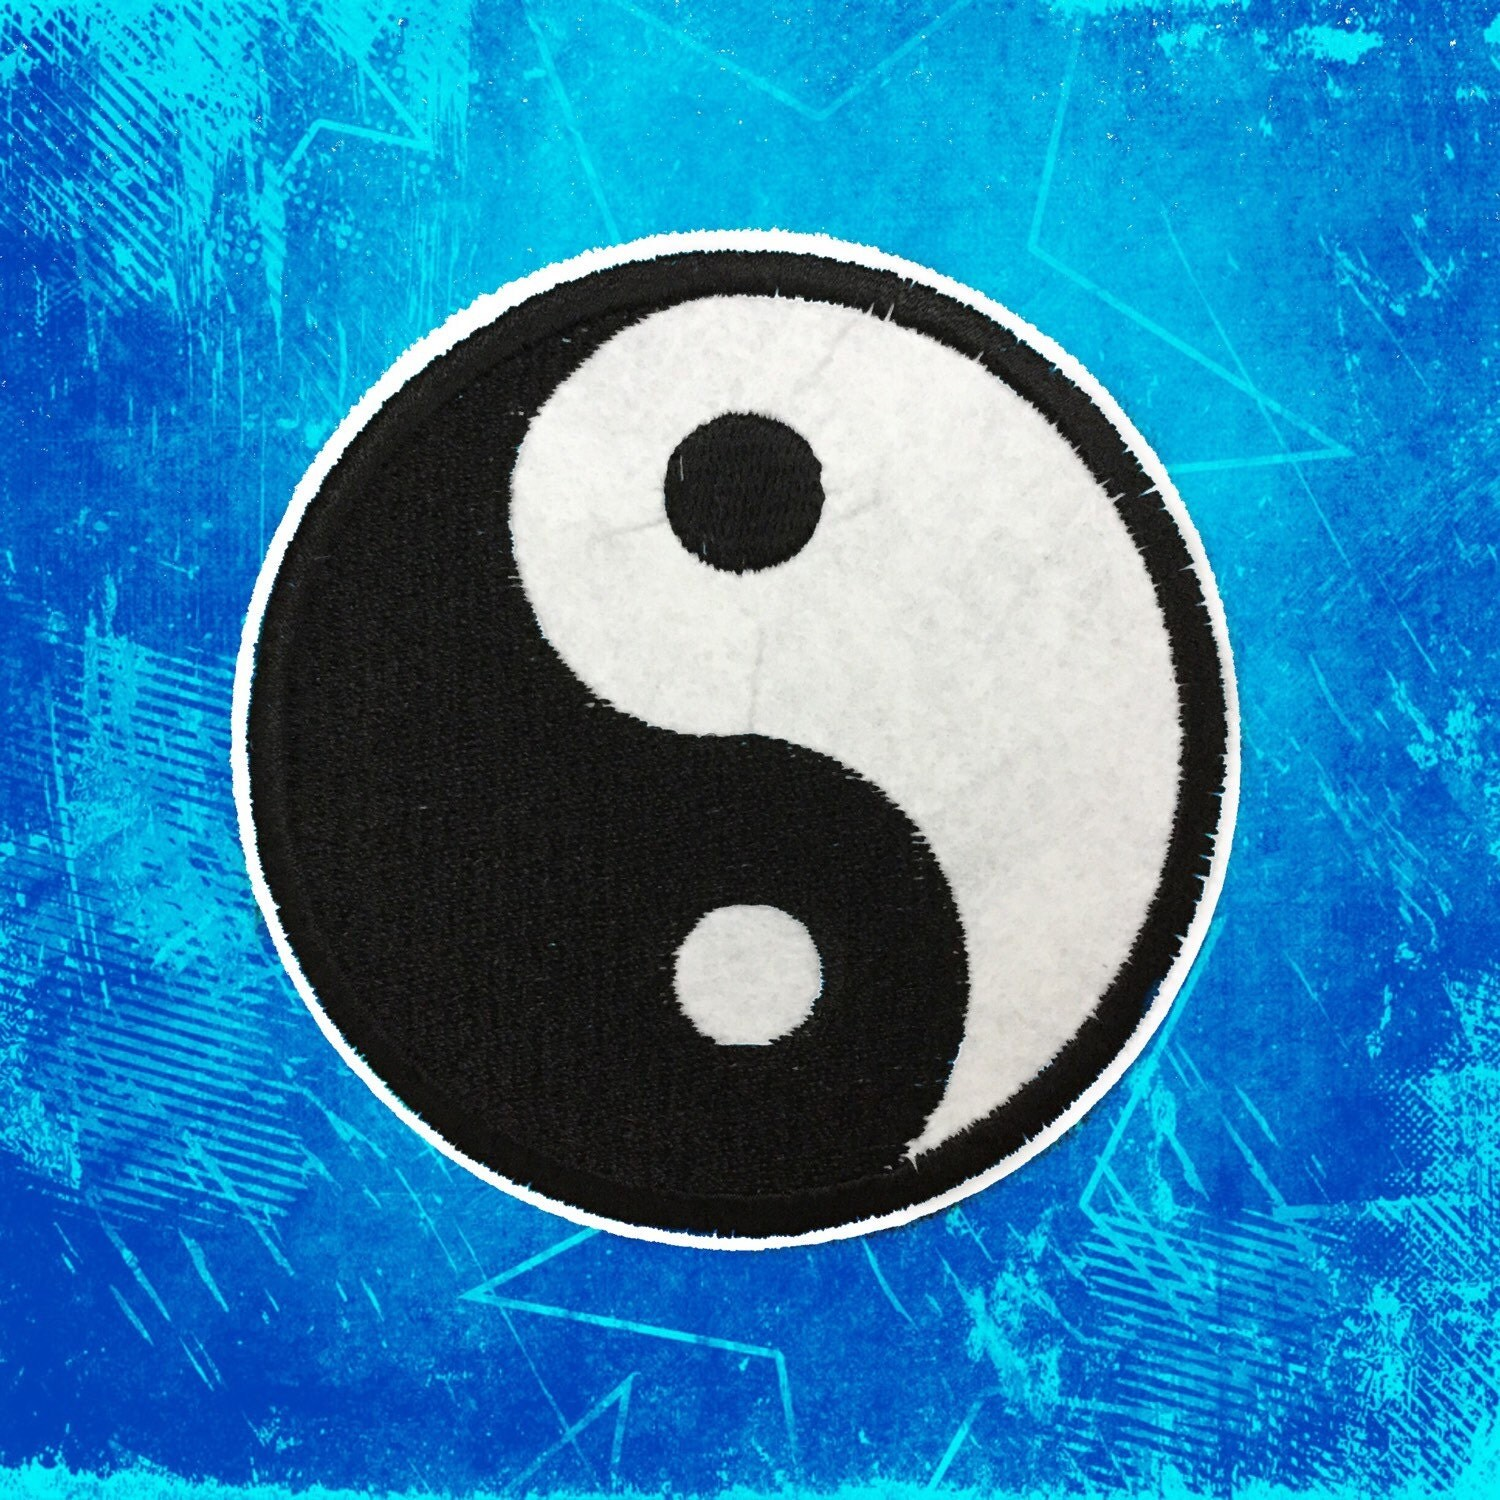 Punk Patch Tai Chi Yin Yang Symbol Embroidered Patches Iron On